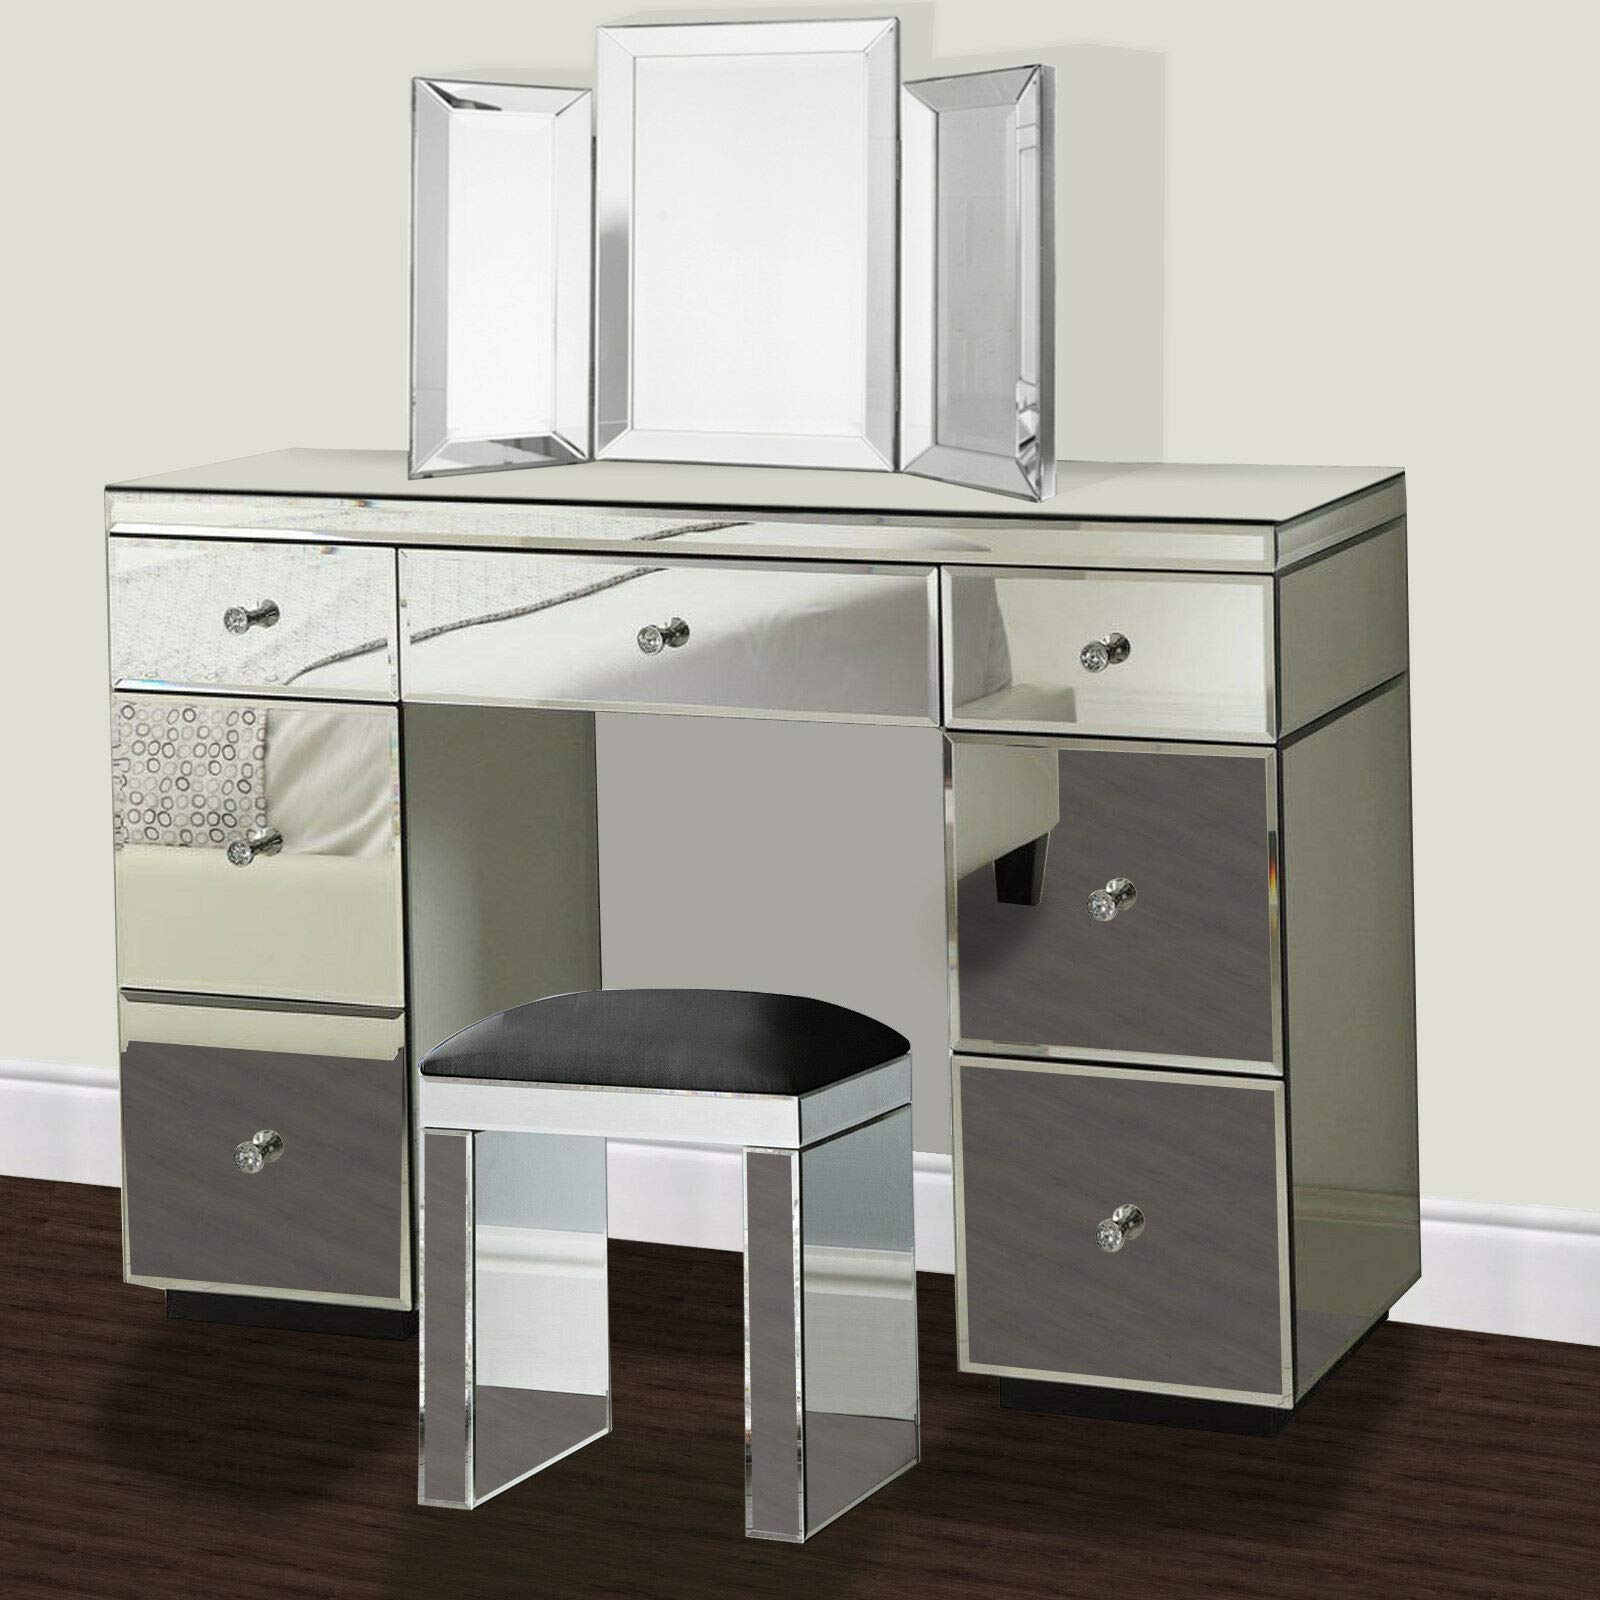 Glass Mirrored Furniture Dressing Table With Drawer Console Bedroom With Bevelled Mirror And Stool Amazon Co Uk Kitchen Home